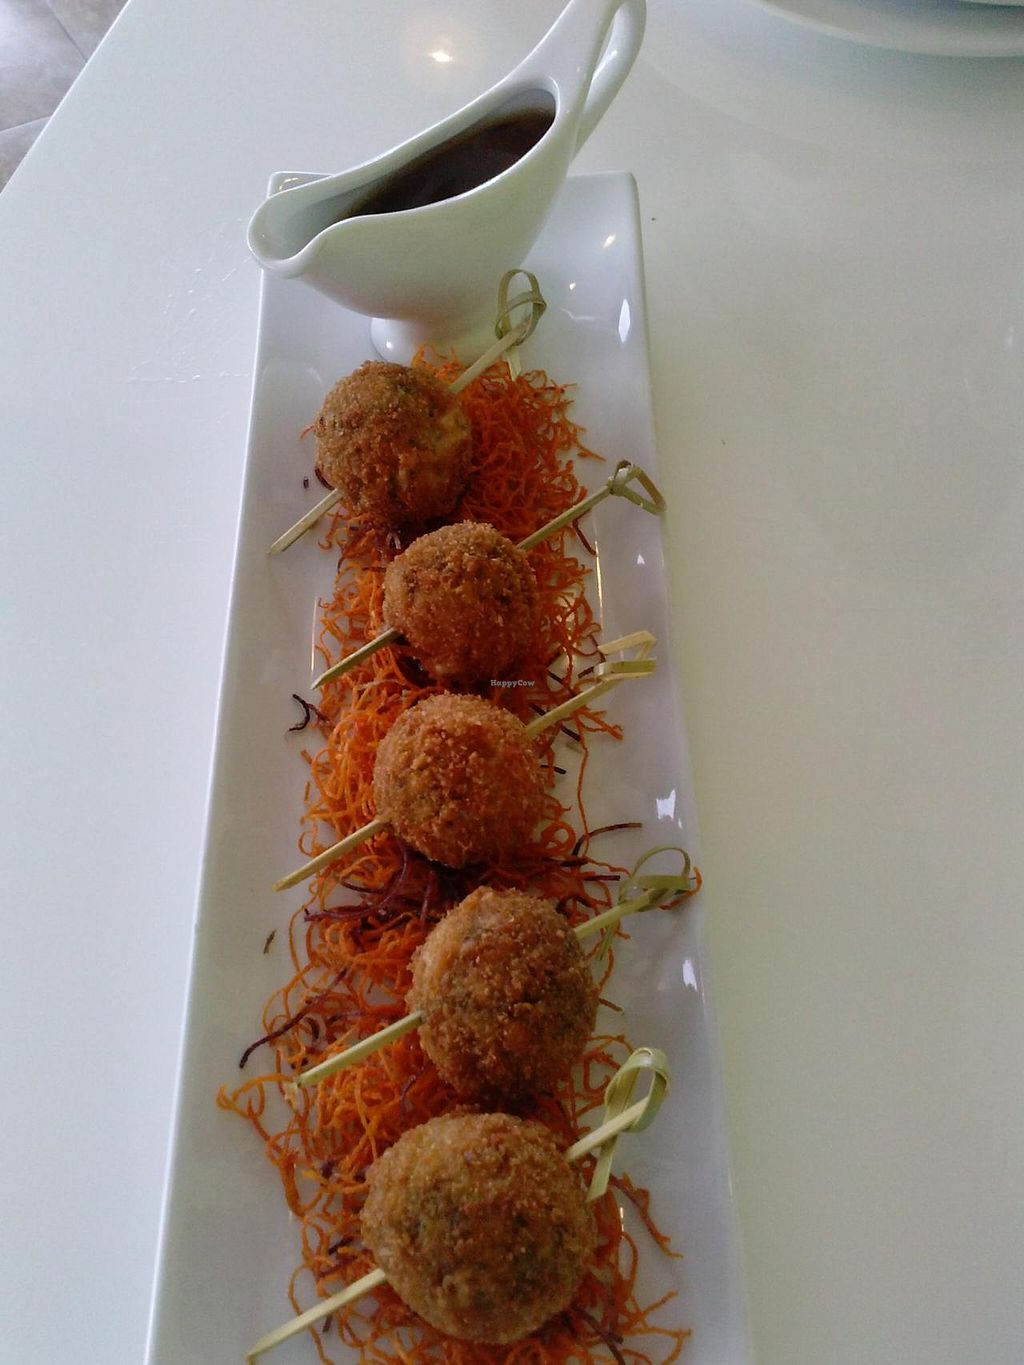 """Photo of Satdha Kitchen  by <a href=""""/members/profile/Sonja%20and%20Dirk"""">Sonja and Dirk</a> <br/>mung bean croquettes <br/> July 20, 2014  - <a href='/contact/abuse/image/43755/74569'>Report</a>"""